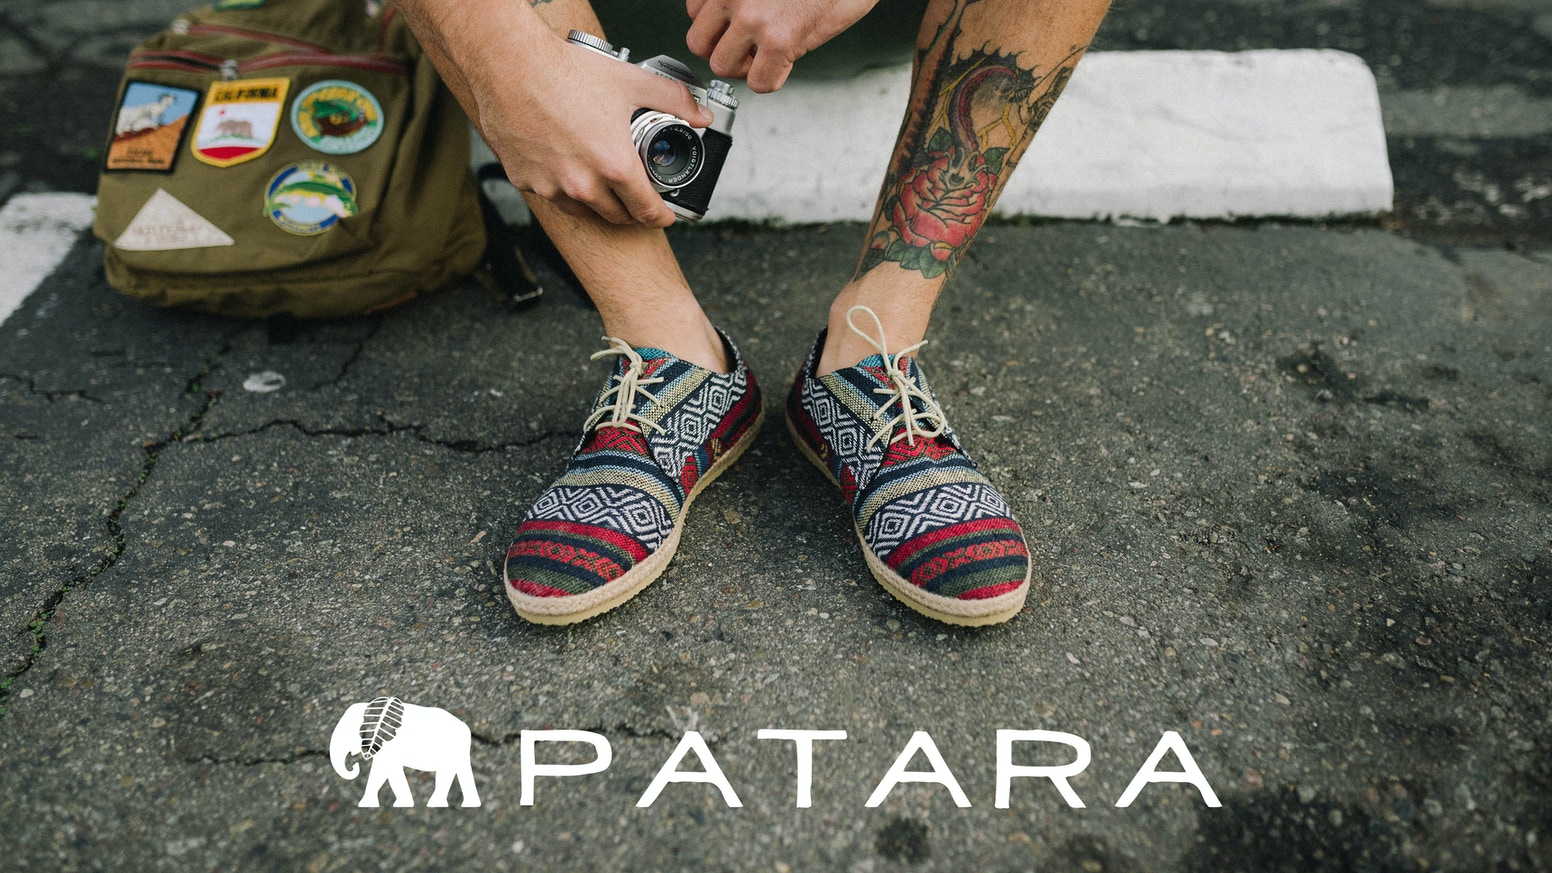 Lightweight, versatile, and inspired by the tropics, Patara Shoes are designed for the modern traveler.